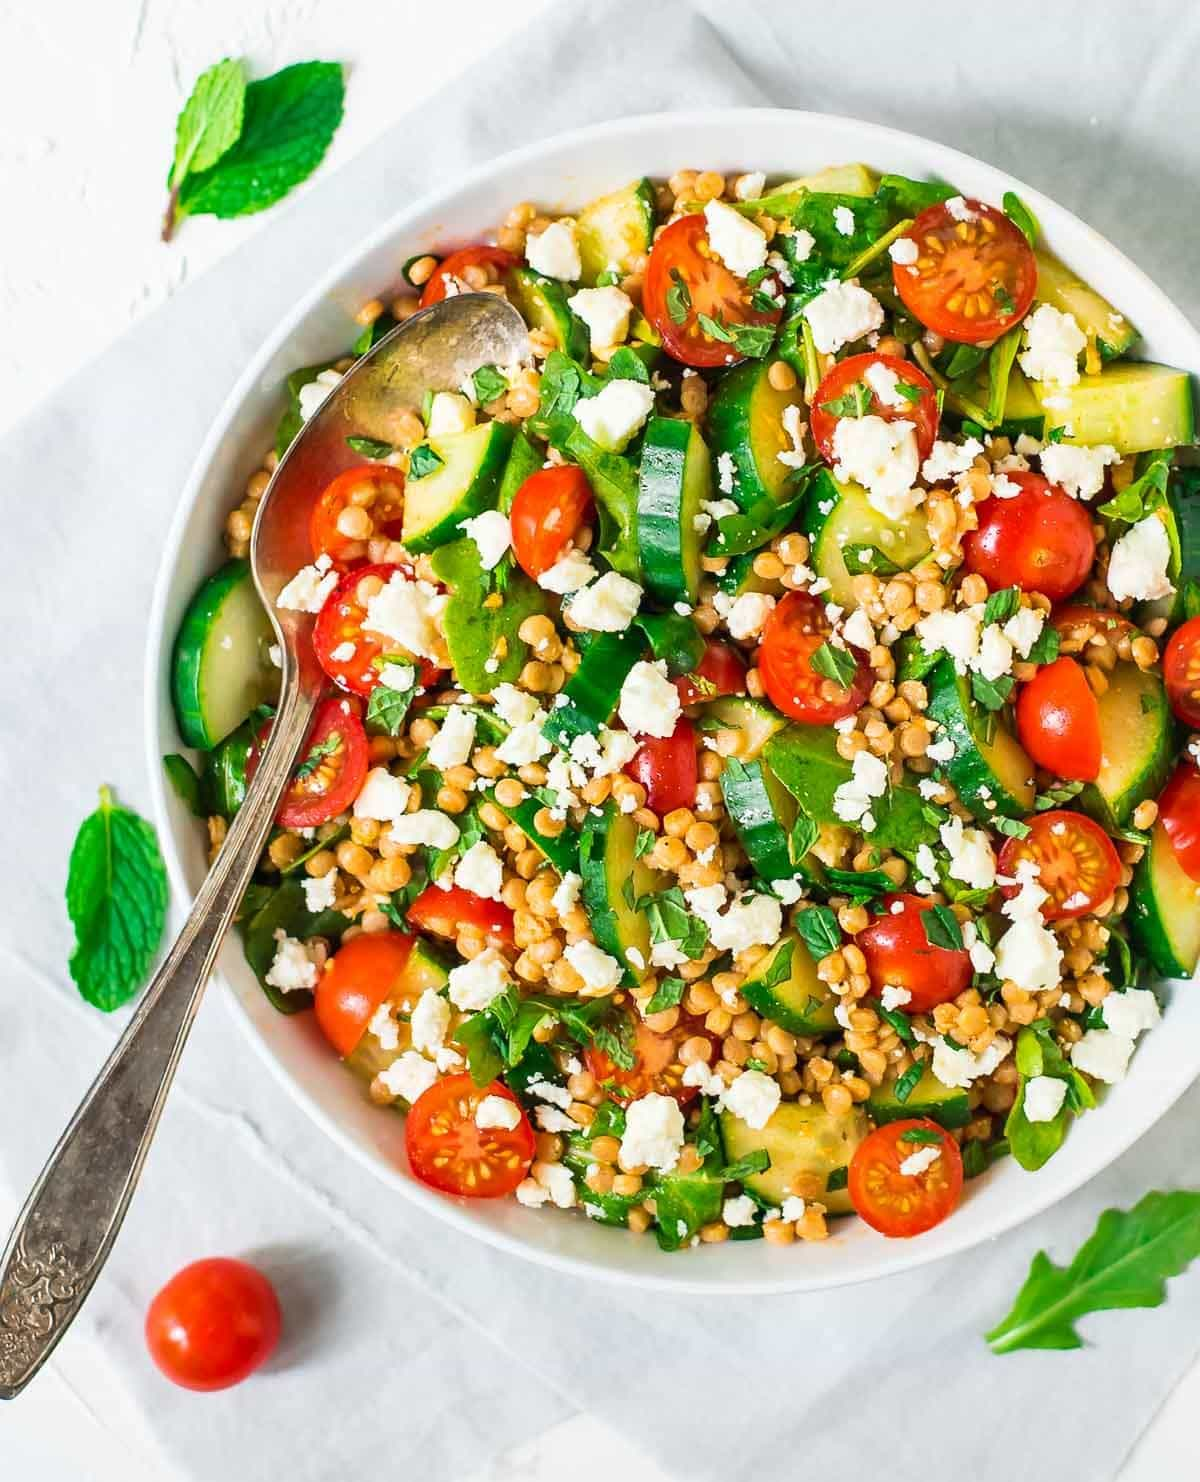 Mediterranean Couscous Salad with Feta and Mint — A quick and easy meal that's fresh and flavor packed! @wellplated